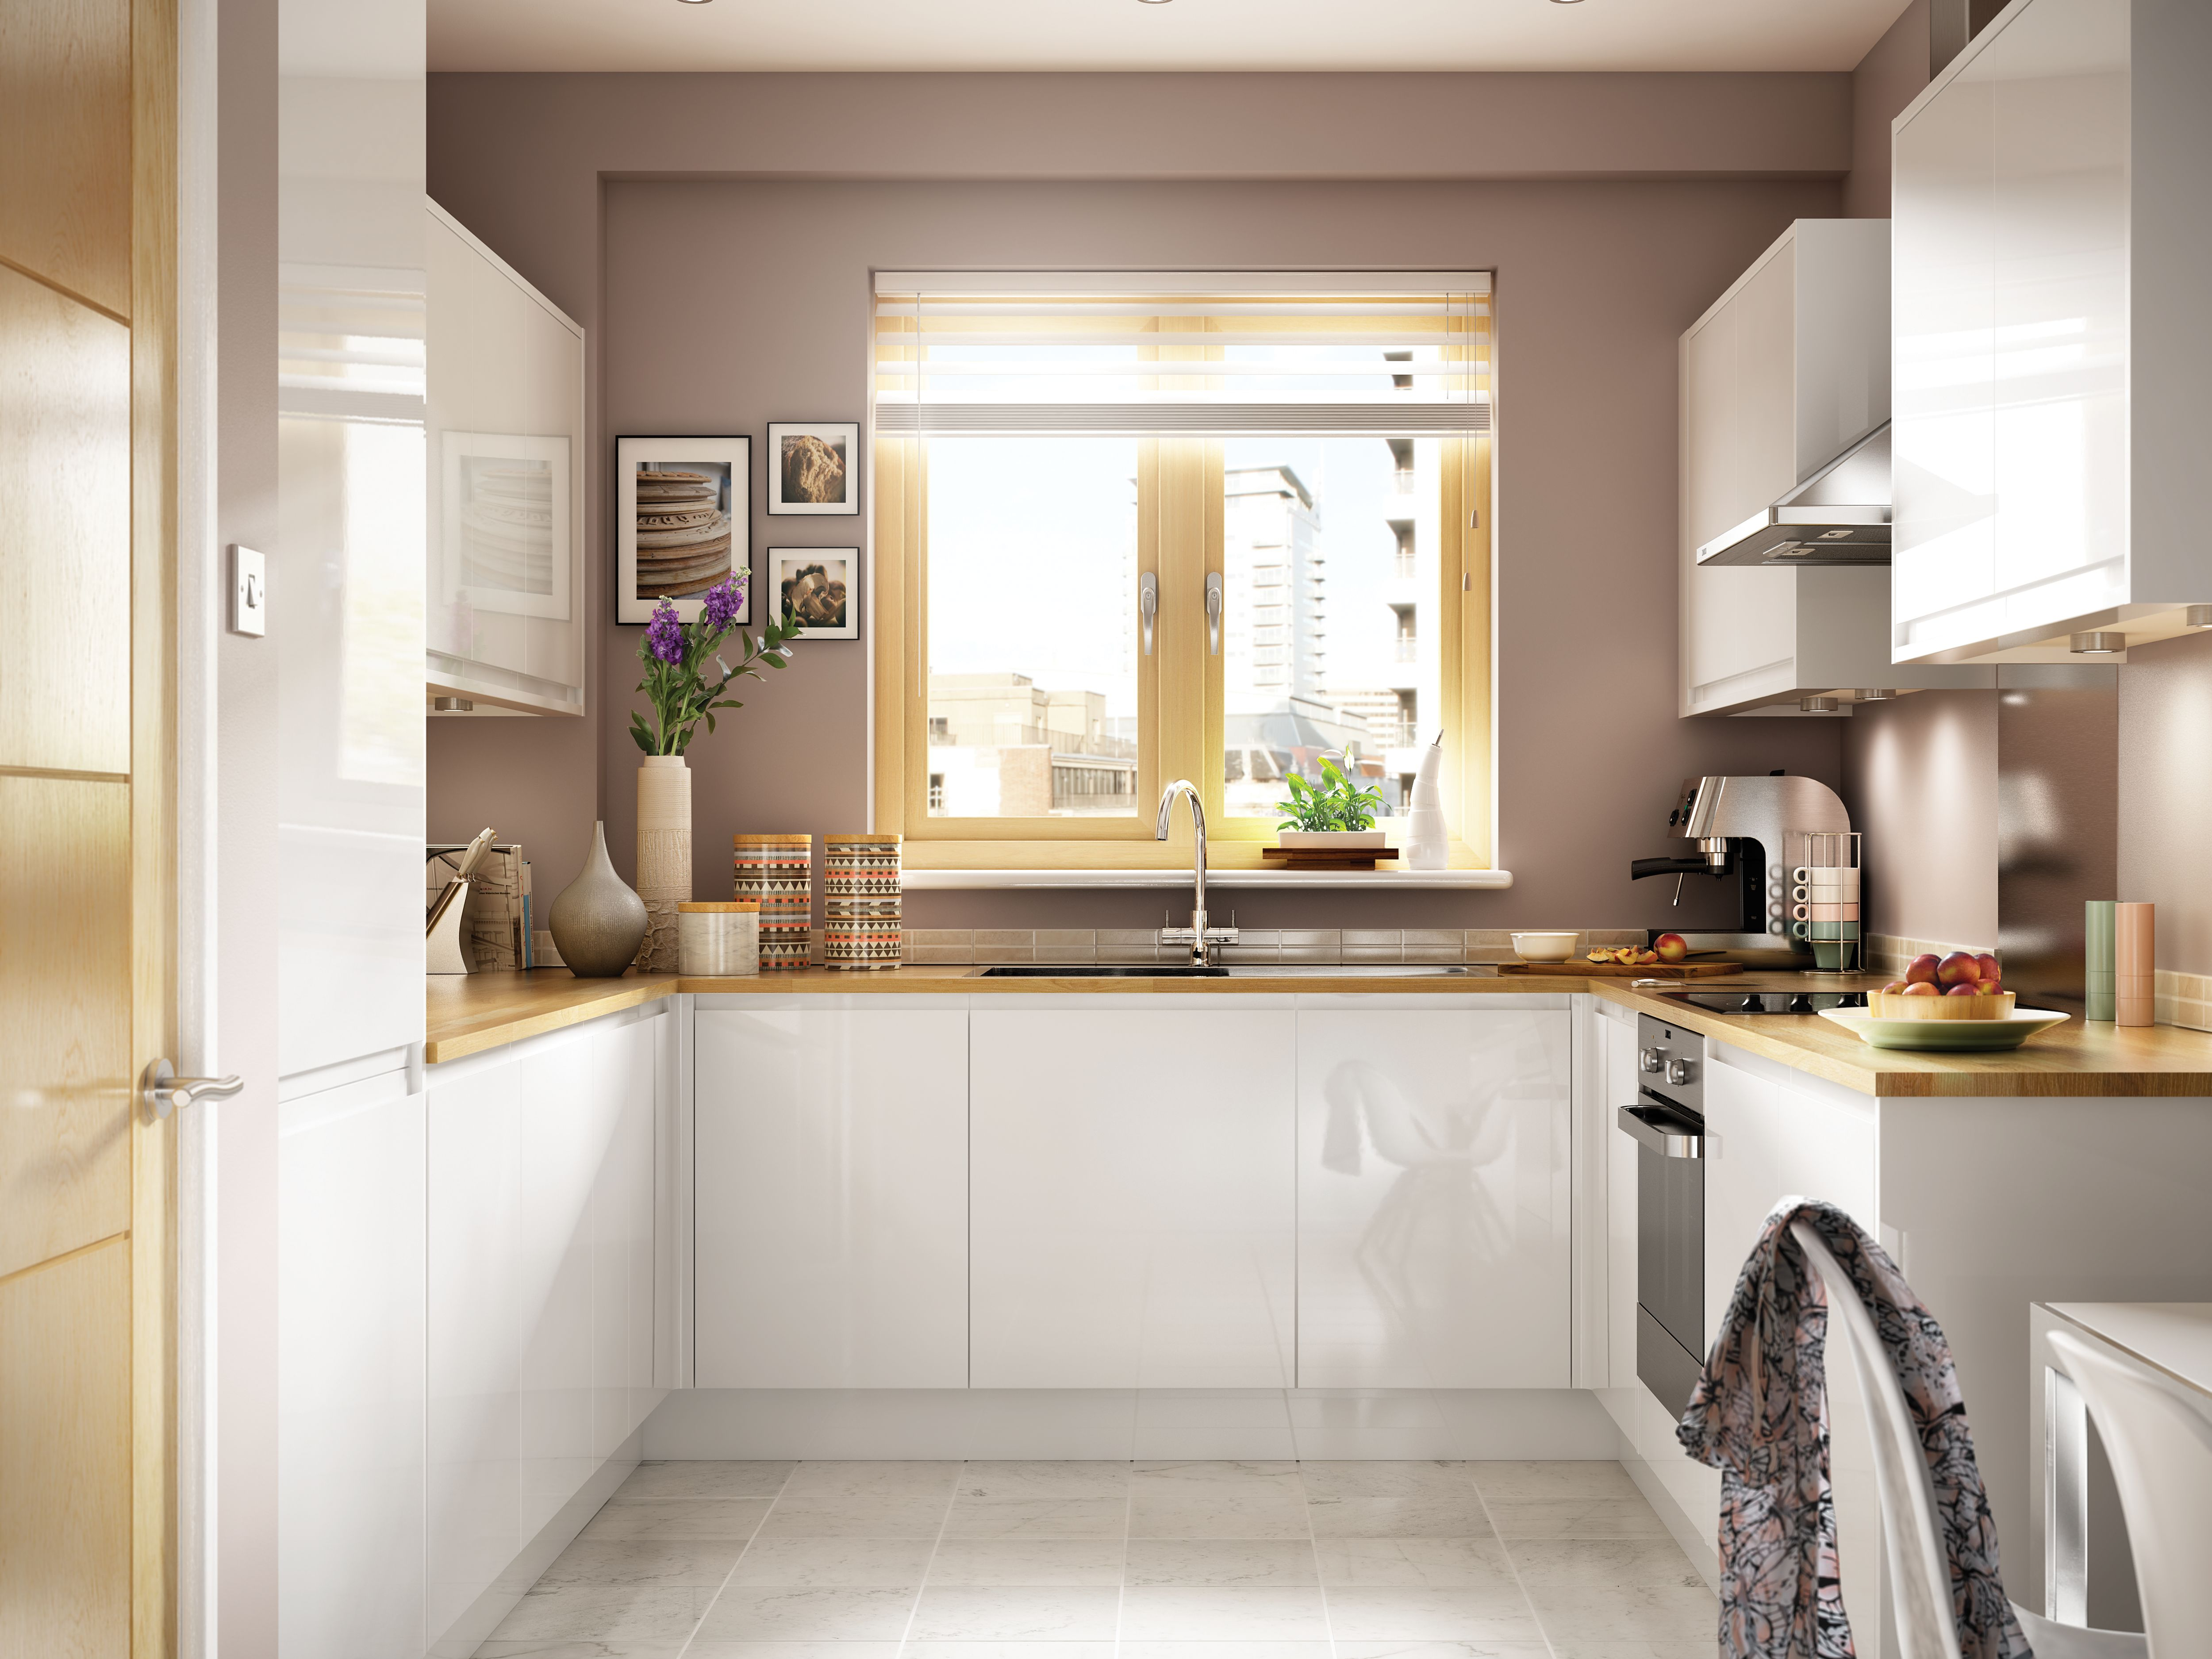 High Gloss Kitchen Cabinet Doors Uk Madison - White Handle-less Kitchen | Wickes.co.uk